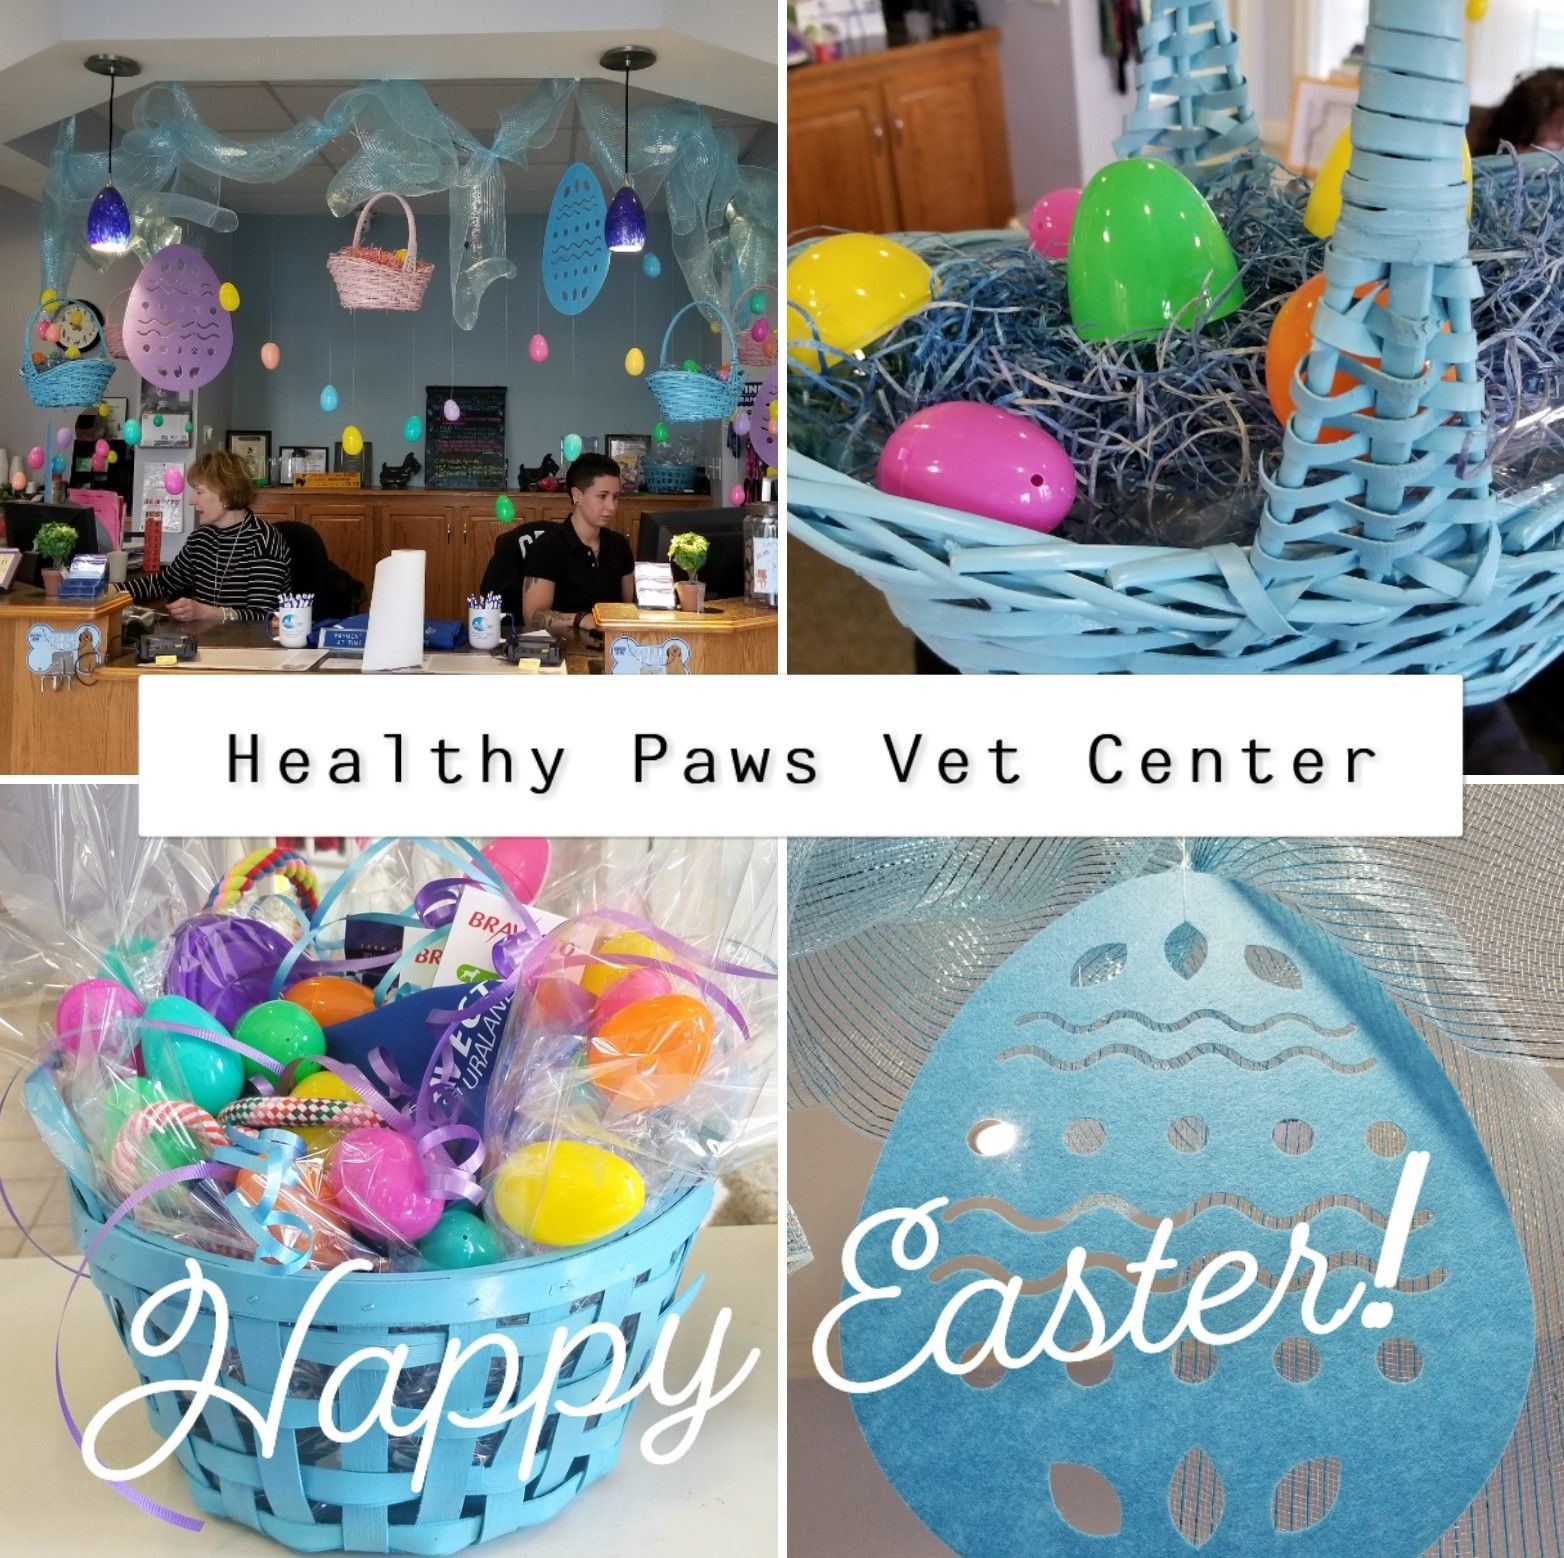 Pin on Healthy Paws Veterinary Center, MA